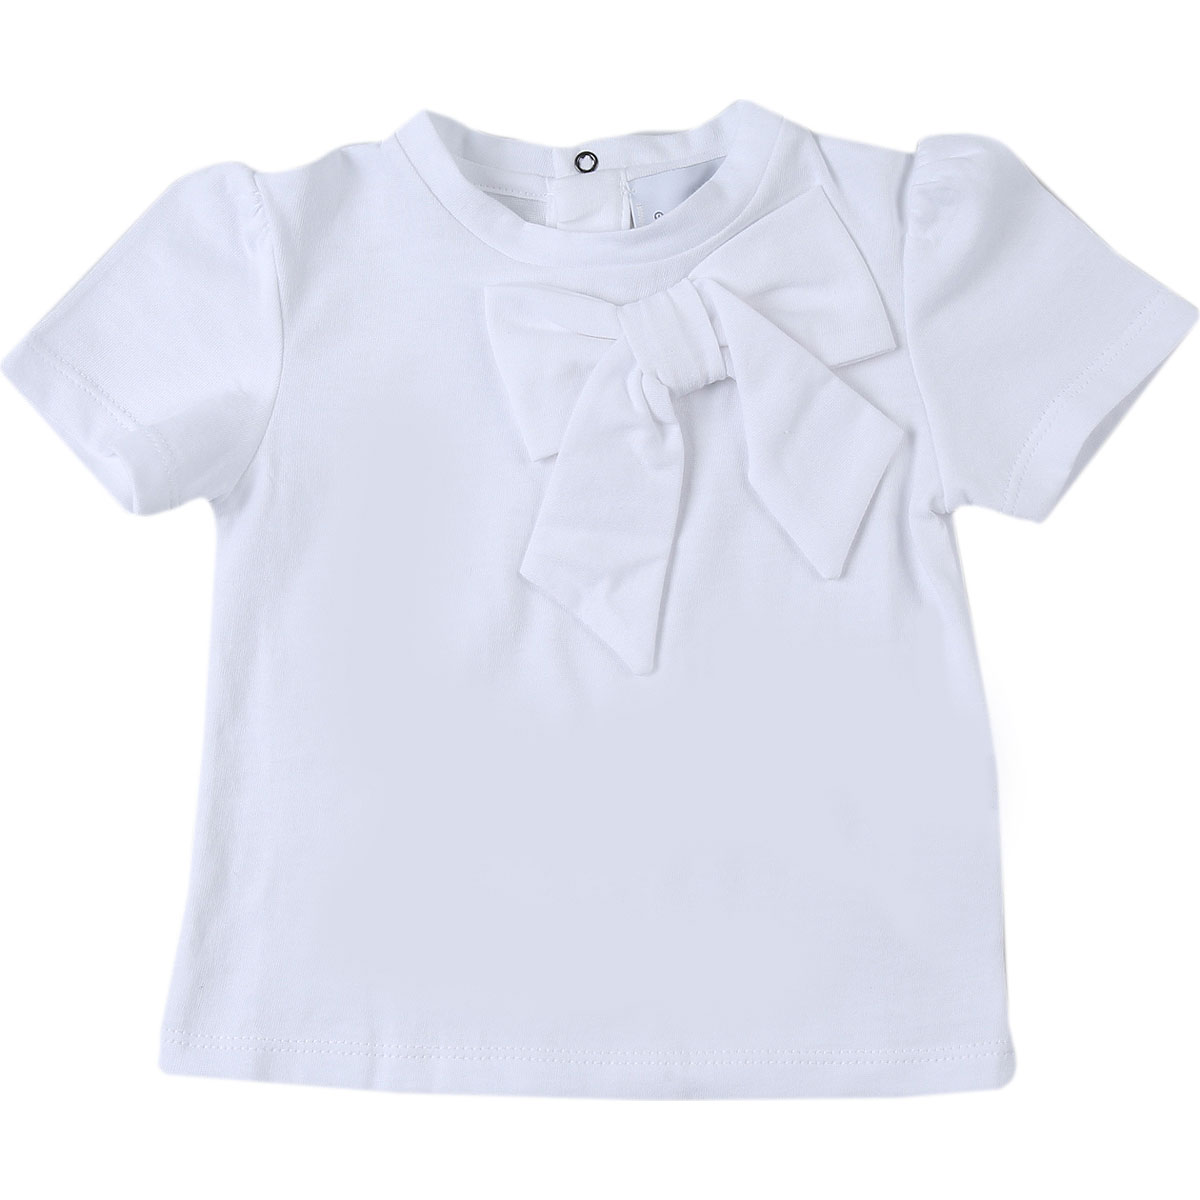 Le Petit Coco Baby T-Shirt for Girls On Sale, White, Organic Cotton, 2019, 12M 18M 2Y